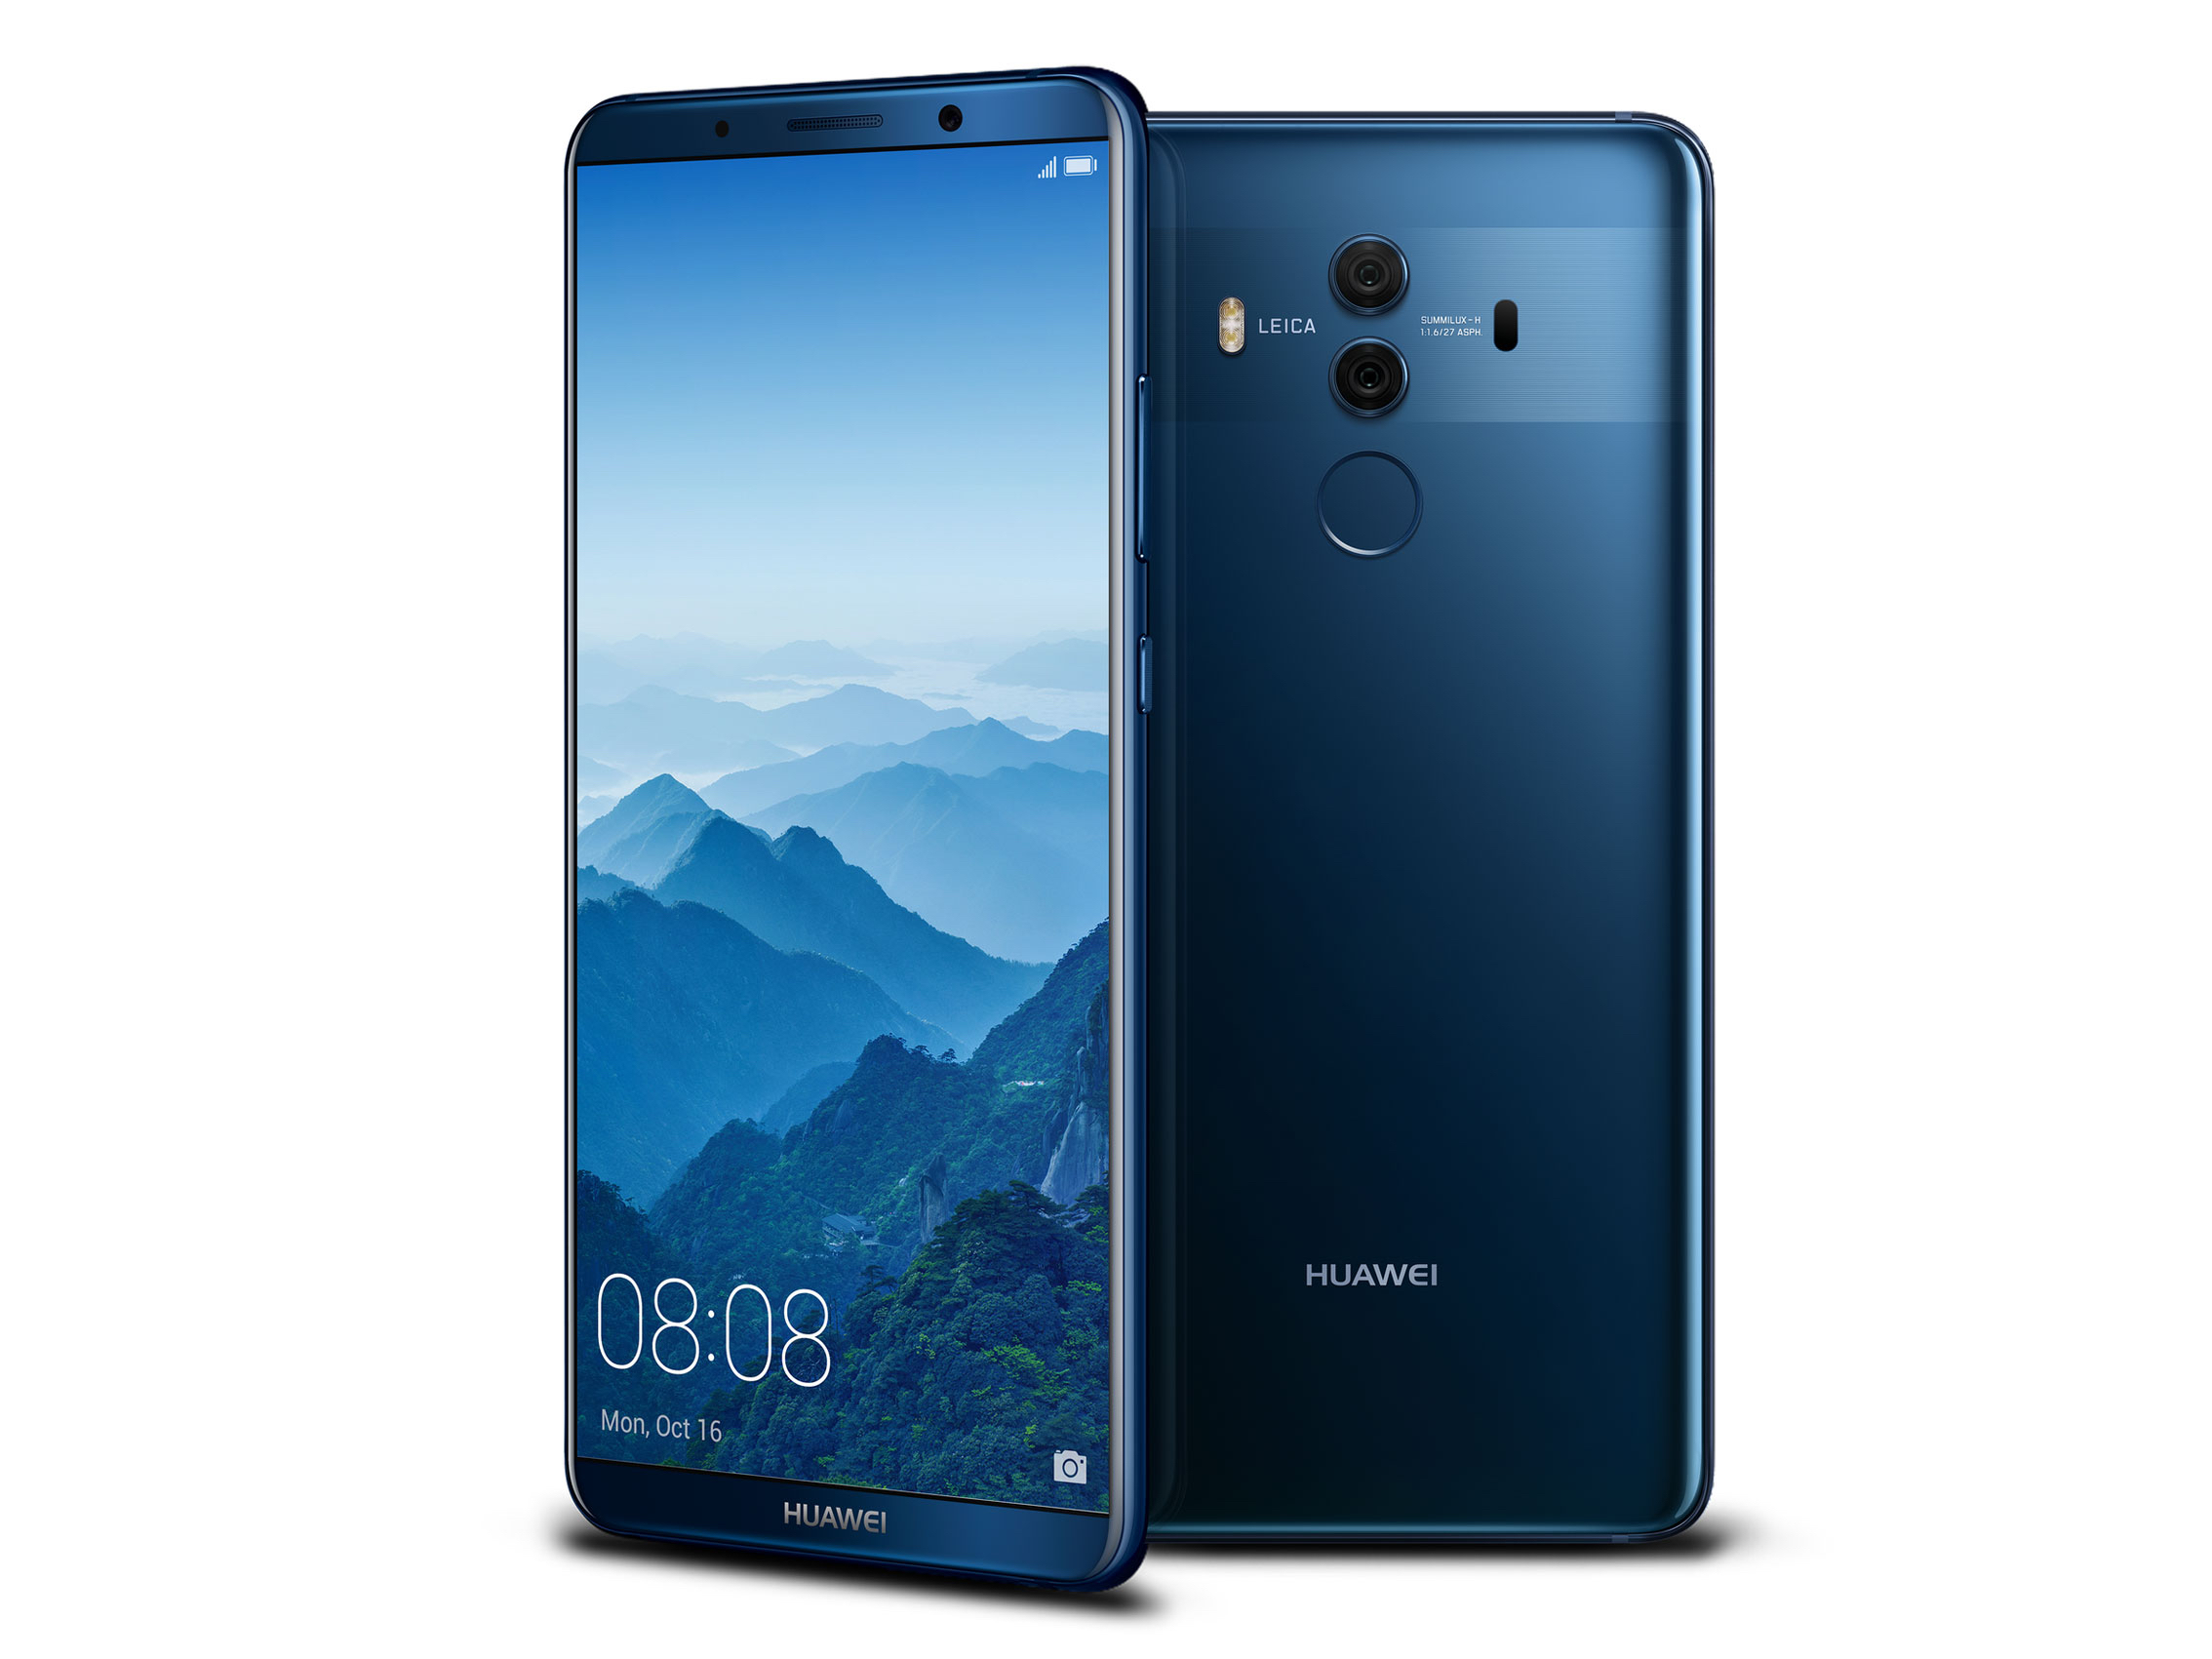 huawei mate 10 pro outstanding still image performance dxomark. Black Bedroom Furniture Sets. Home Design Ideas